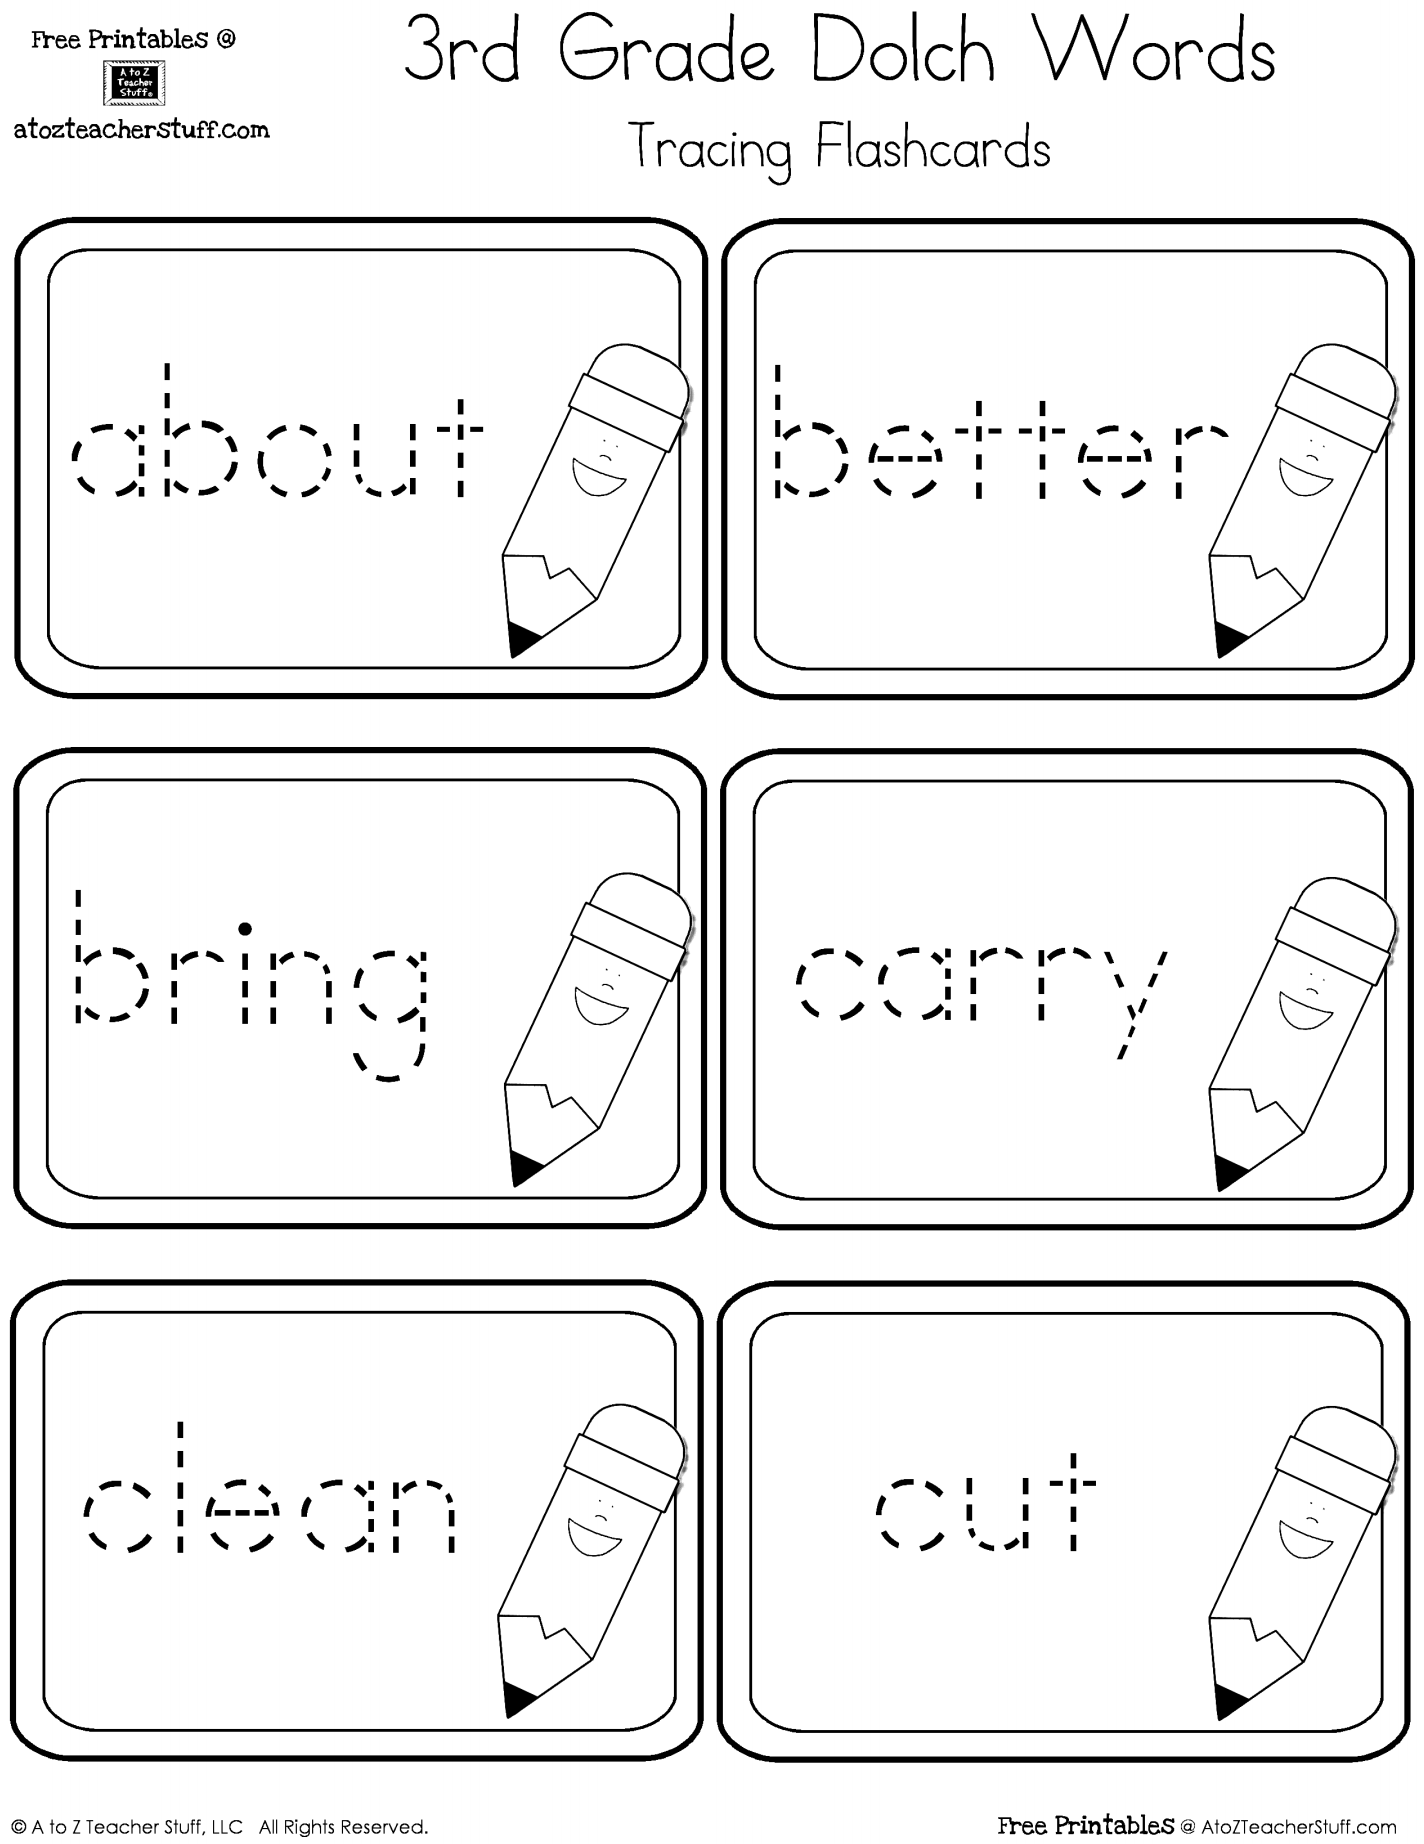 Worksheets Dolch Sight Word Worksheets third grade dolch sight words tracing flashcards a to z teacher 3rd cards free printables